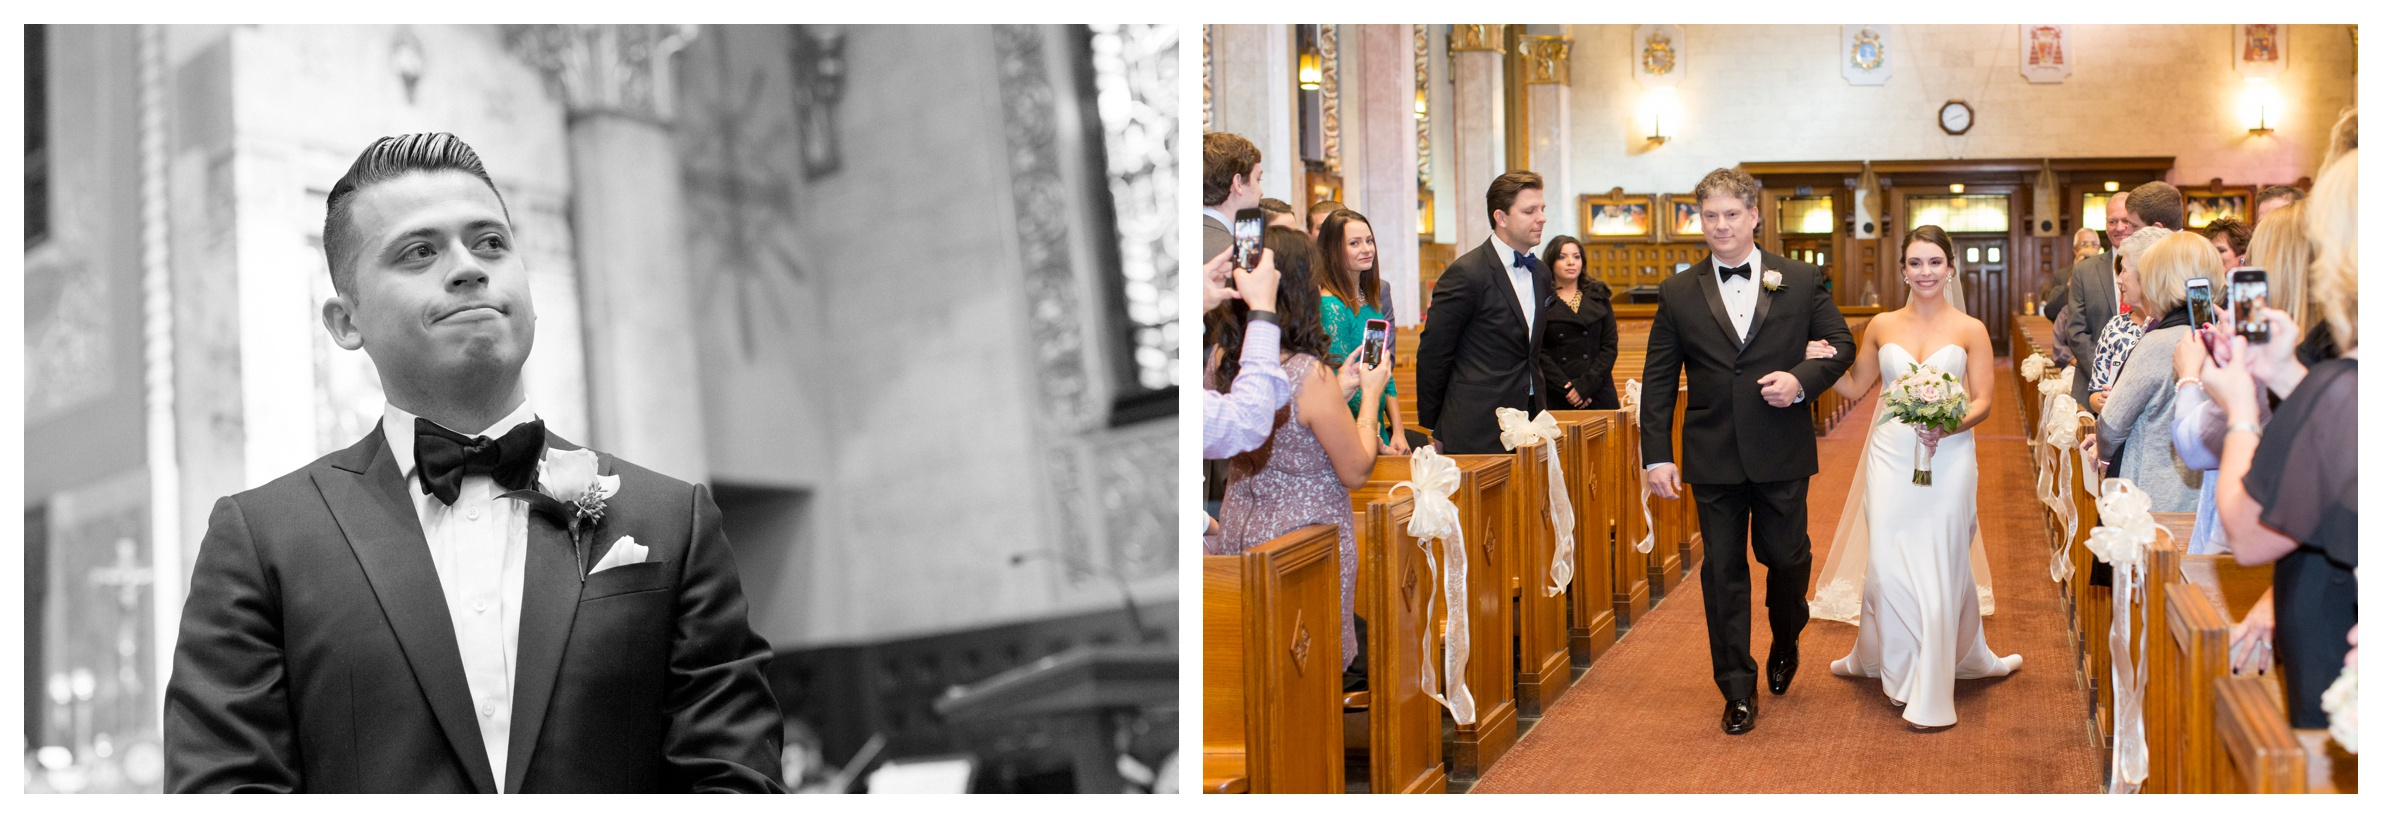 St-Giles-Catholic-Church-wedding